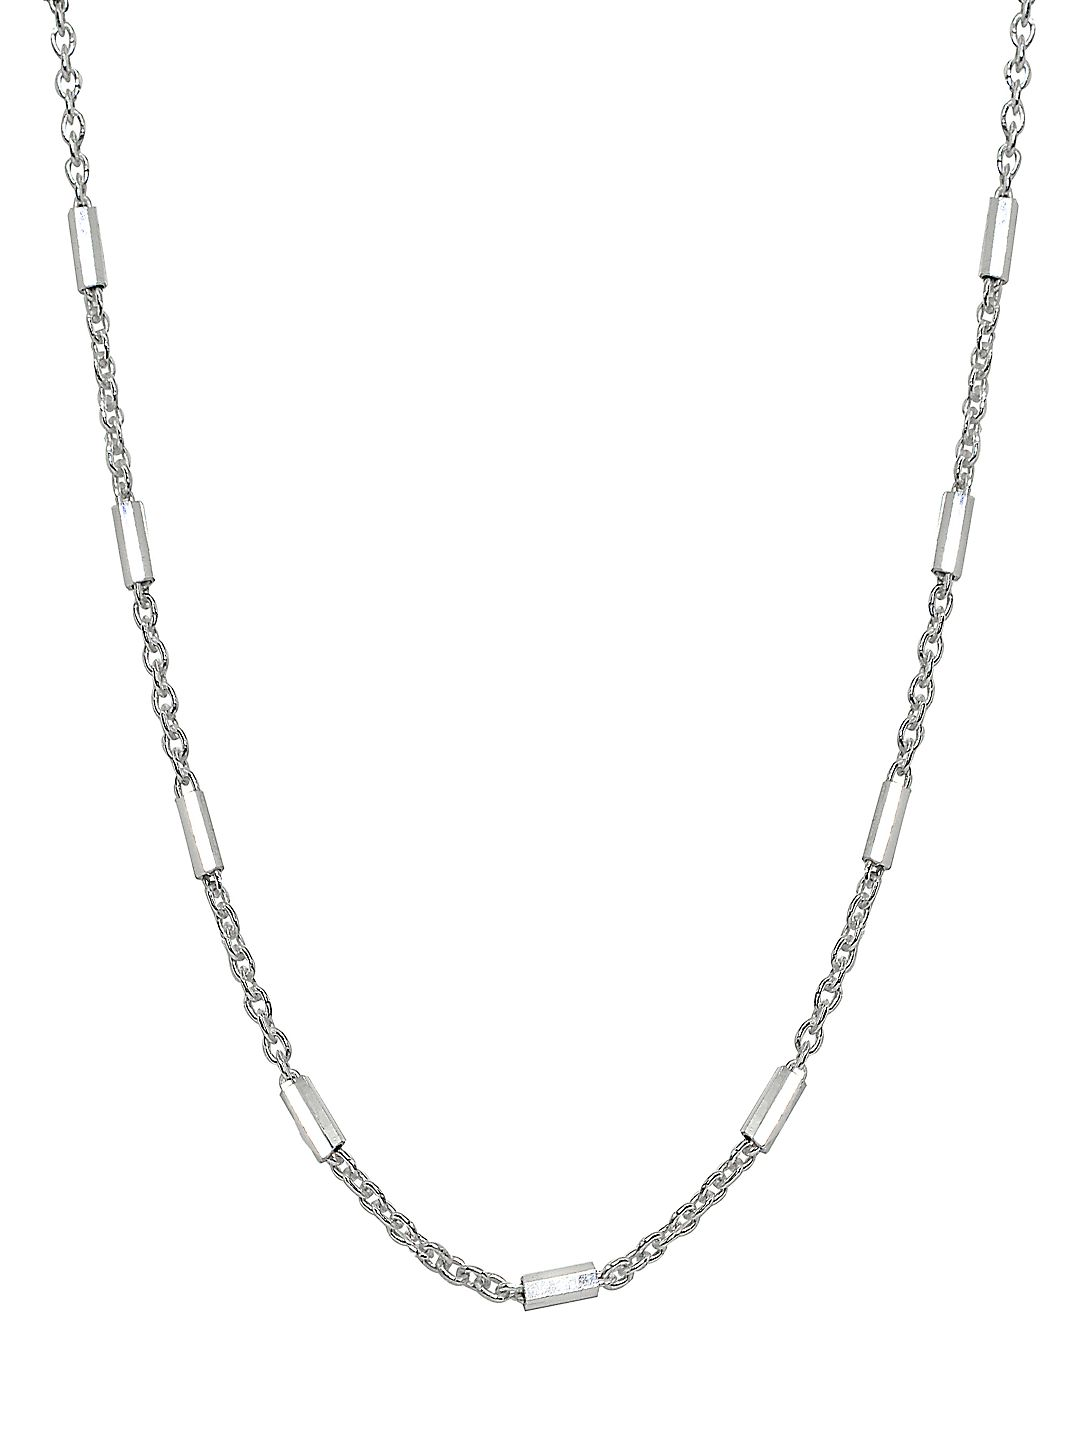 Bar Sterling Silver Station Necklace